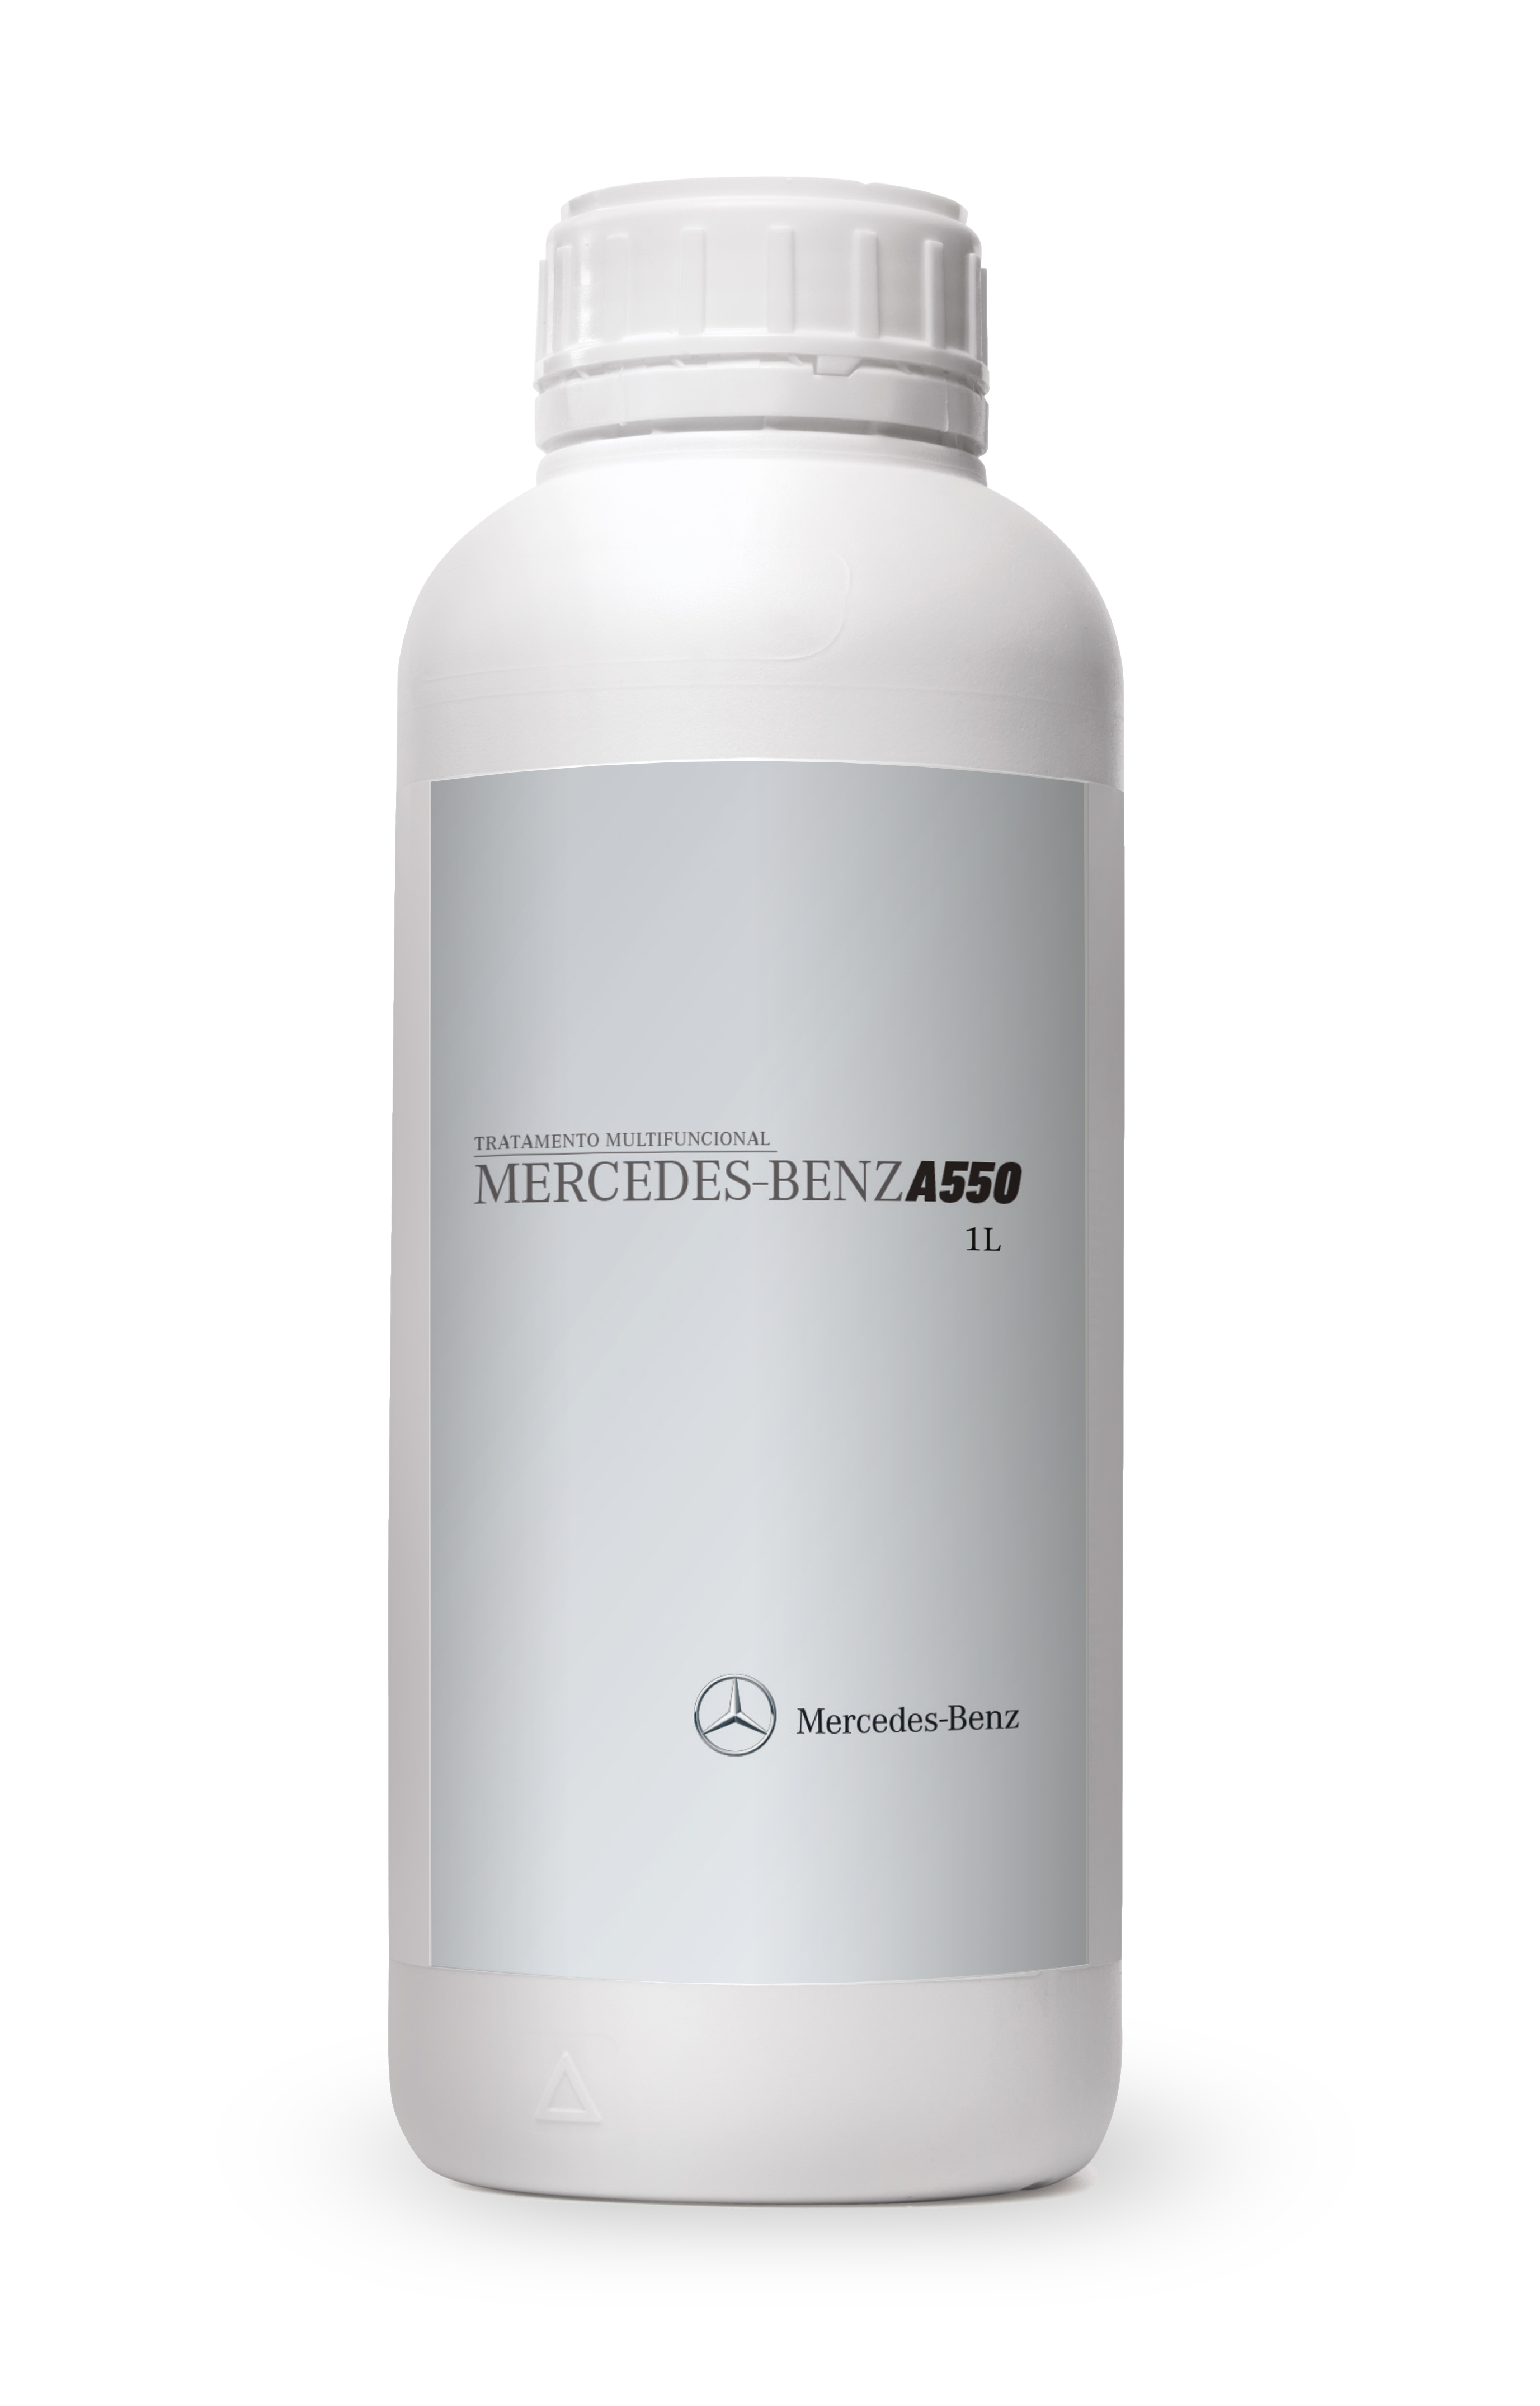 Actioil Partner Mercedes Benz